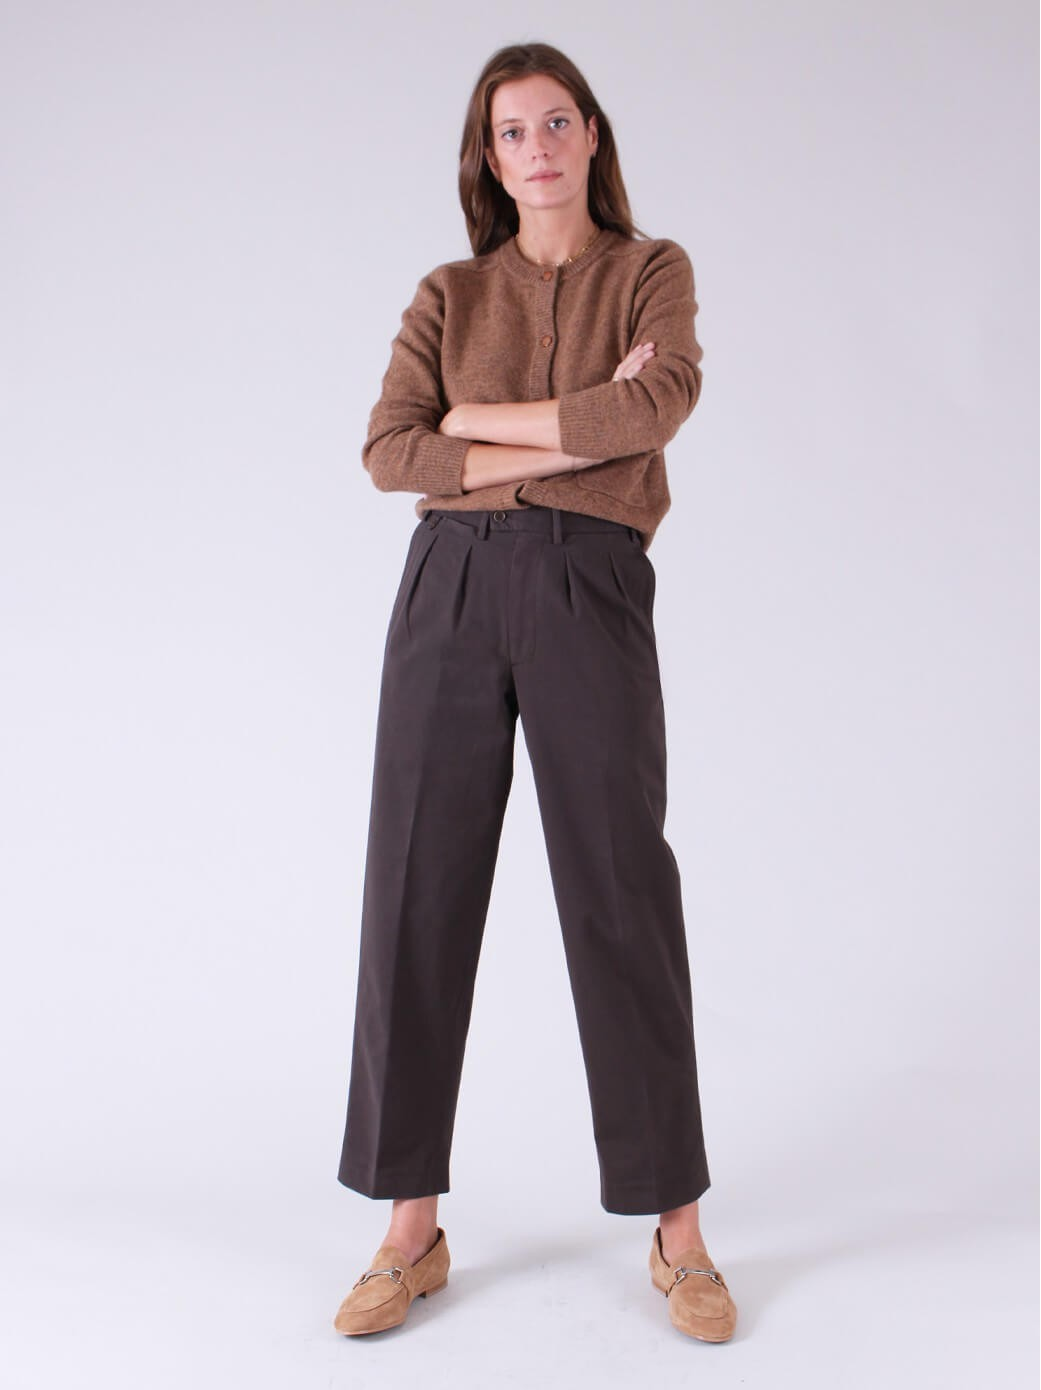 BAC J IN CHINO CHIC 96838